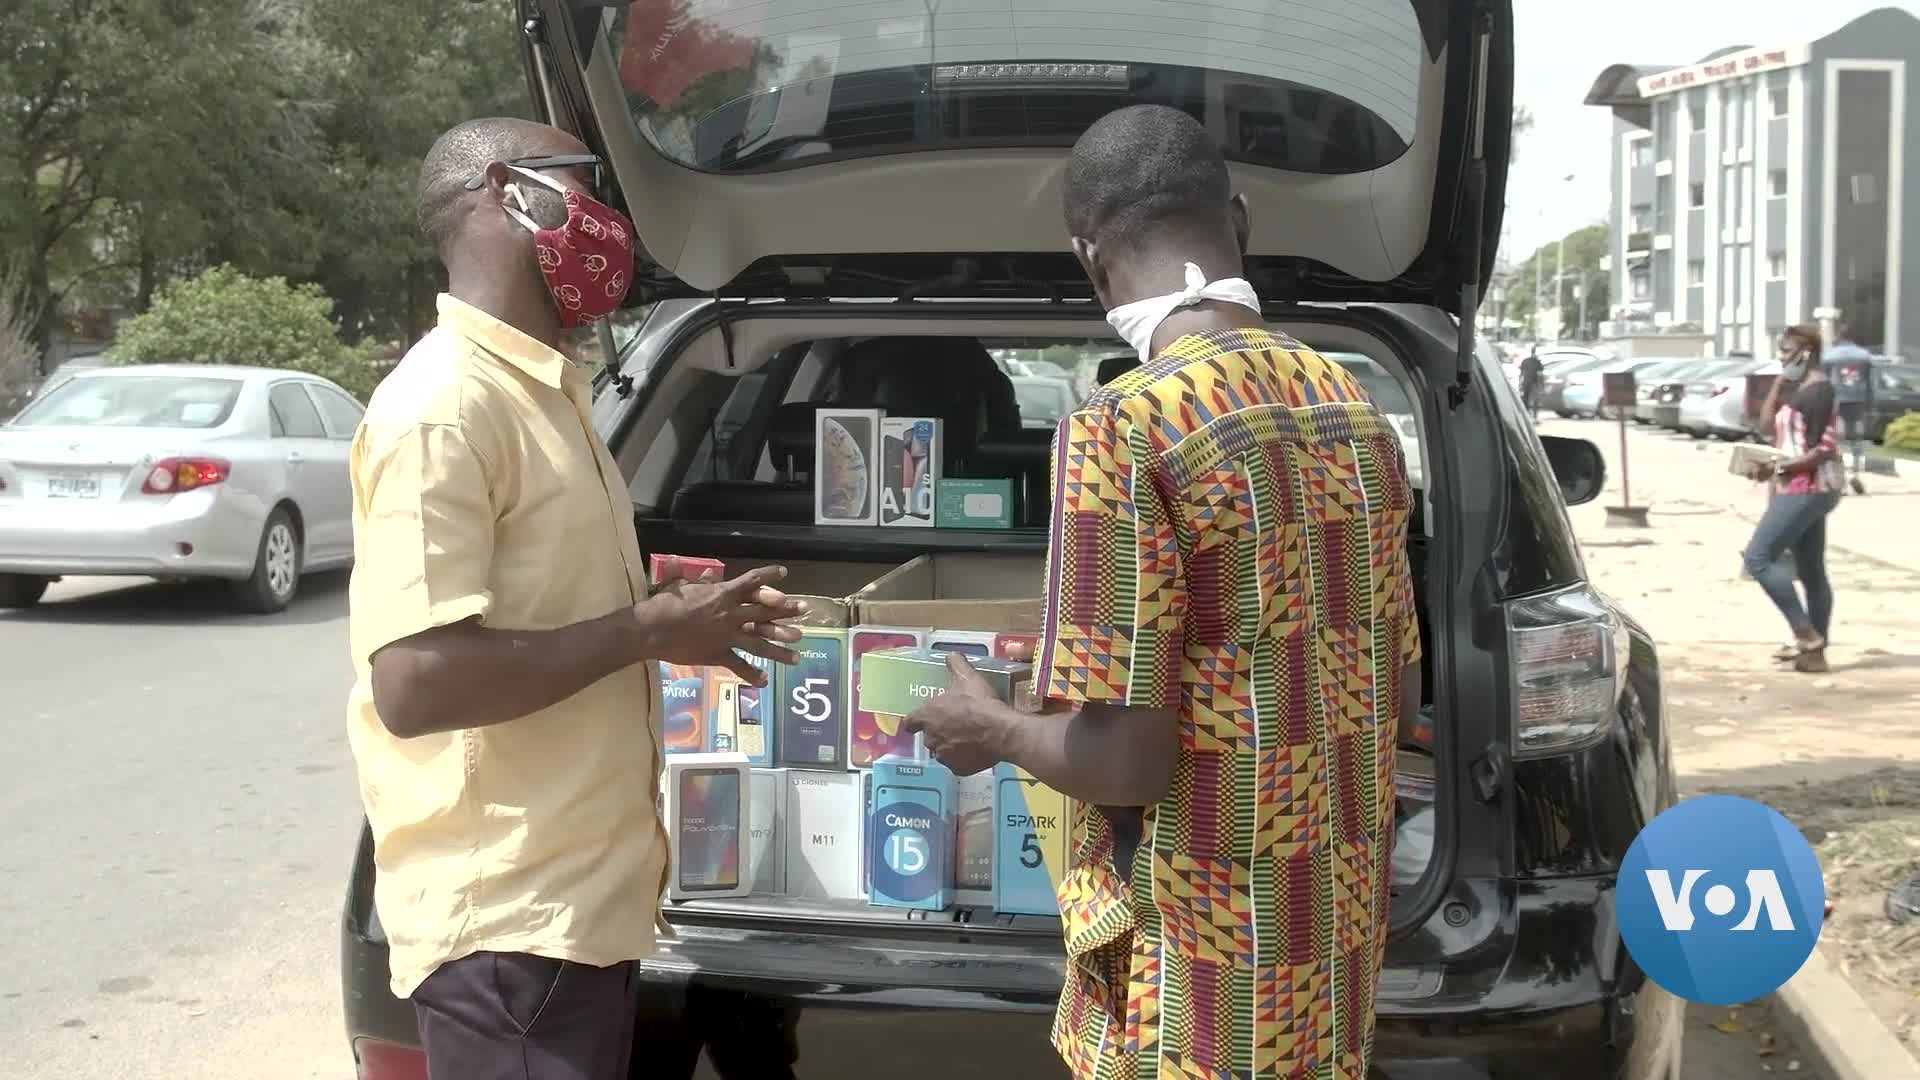 Nigeria Businesses Sell Goods From Car Trunks as Pandemic Workaround